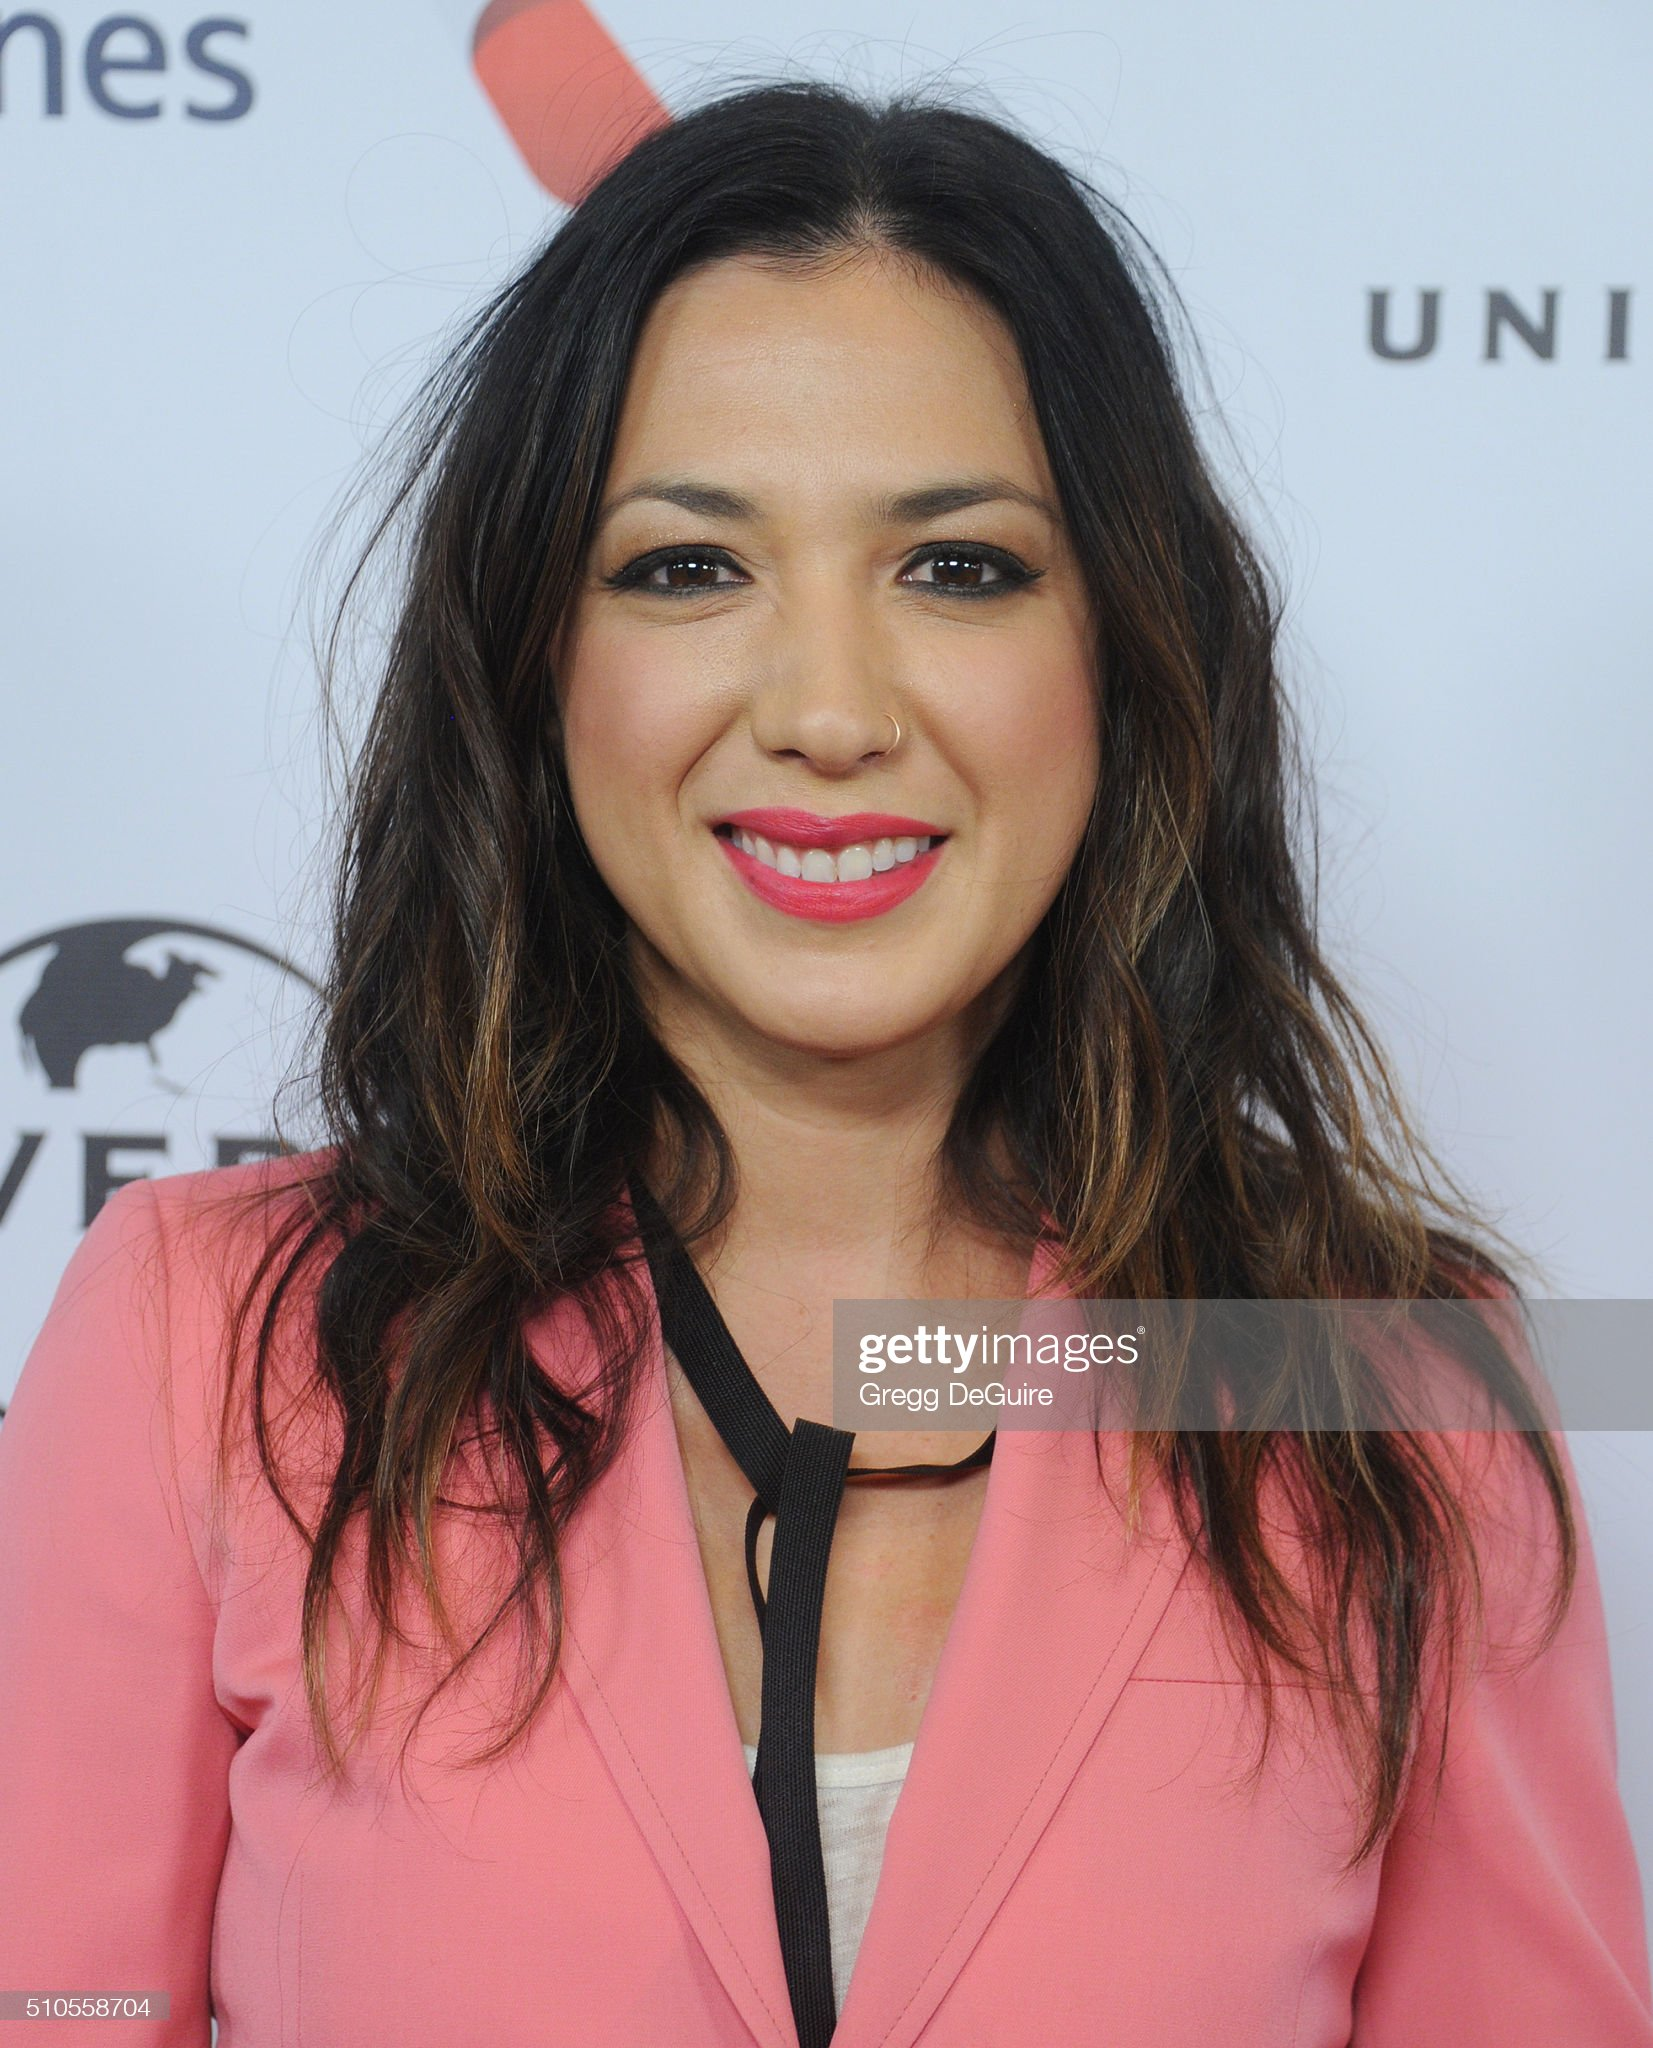 ¿Cuánto mide Michelle Branch? - Altura - Real height Singer-michelle-branch-arrives-at-universal-music-groups-2016-grammy-picture-id510558704?s=2048x2048